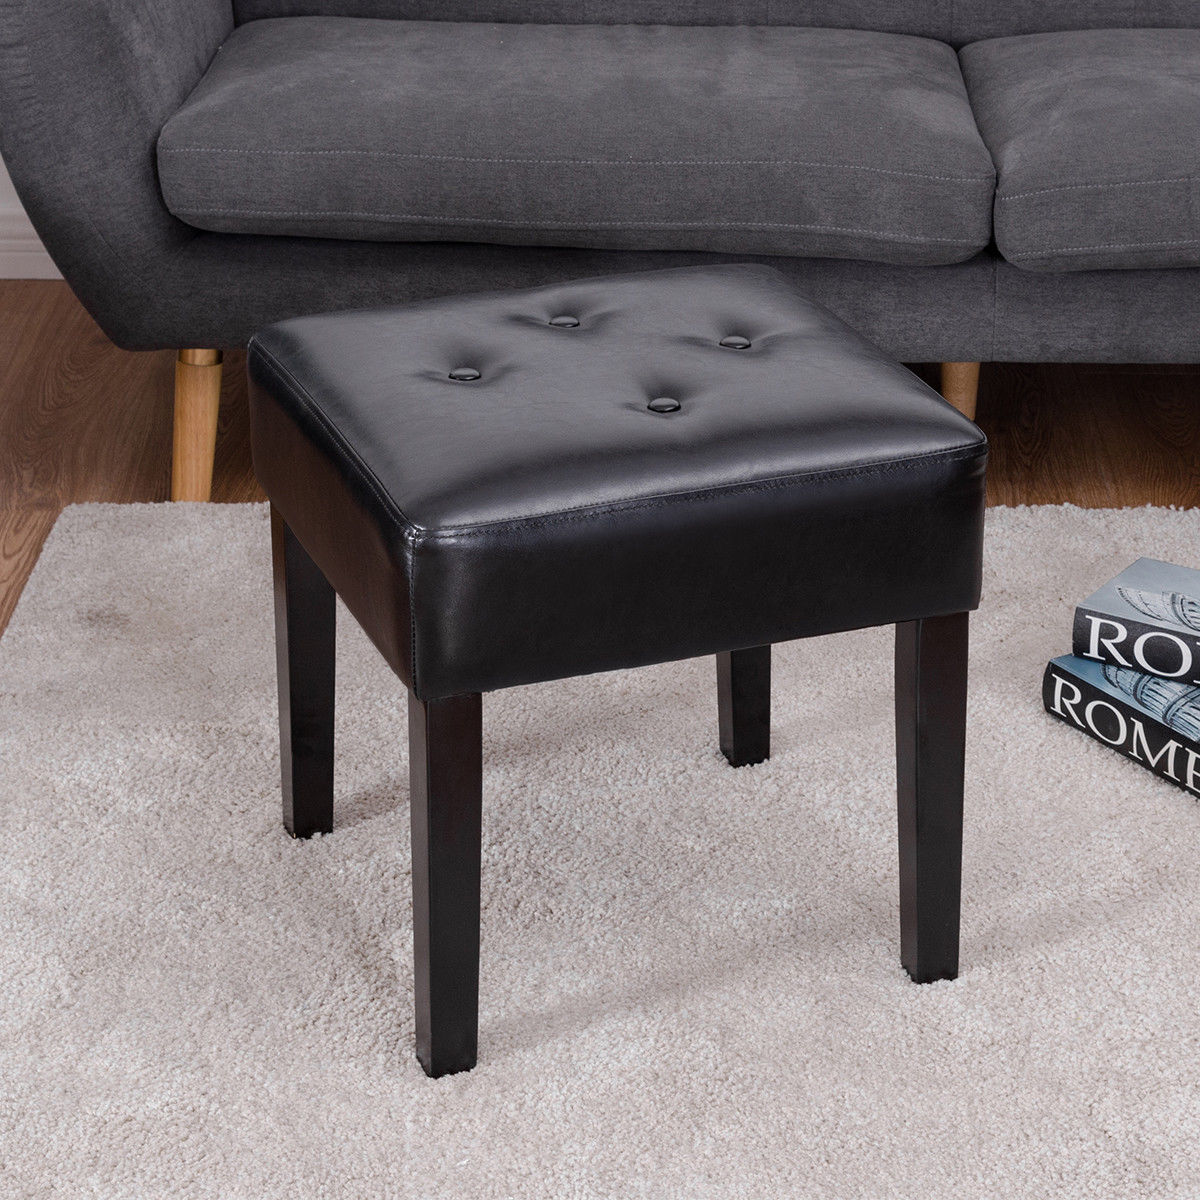 Costway Square PU Leather Ottoman Footstool Tufted Padded Seat Solid Wood Legs Black